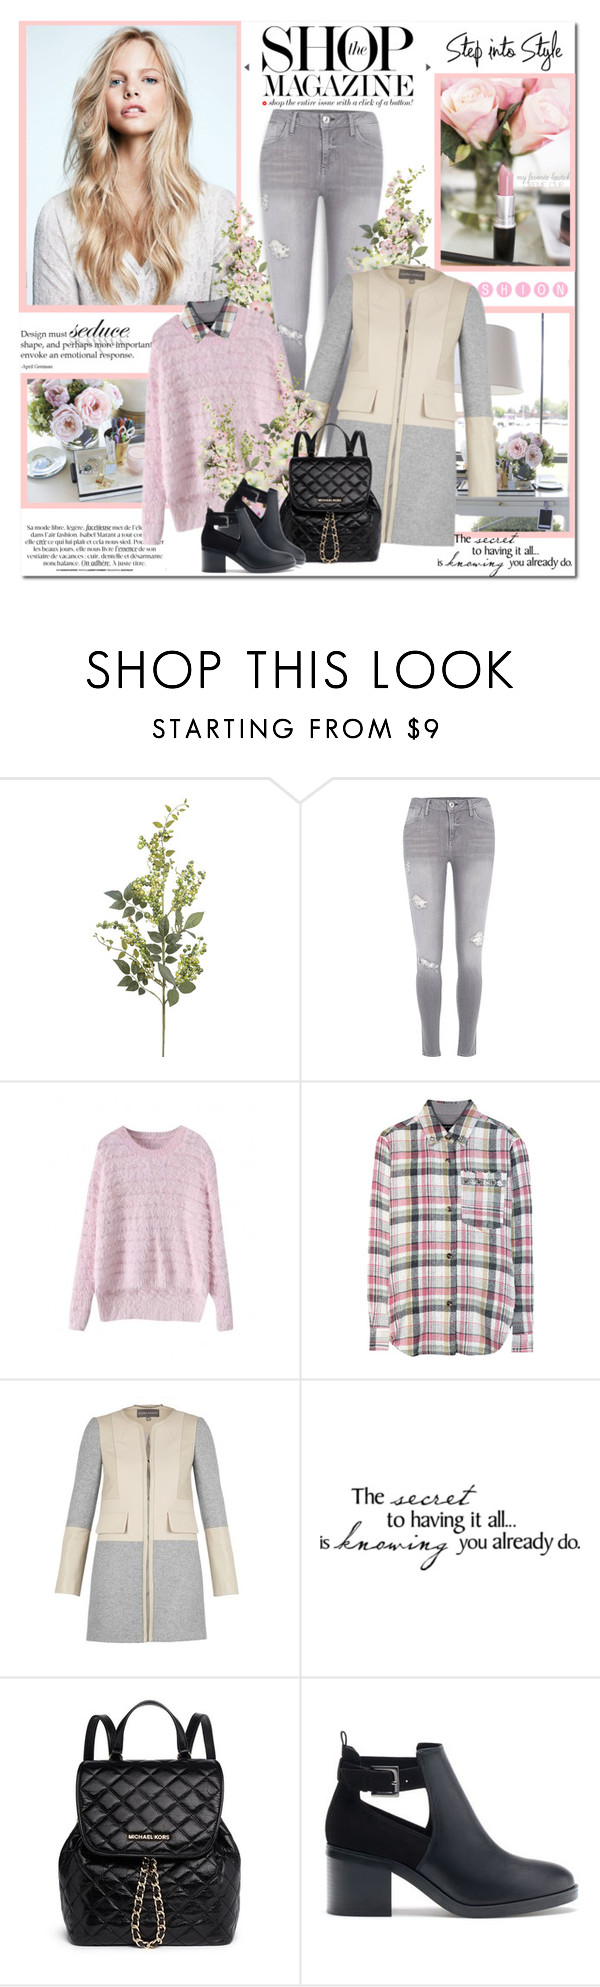 """Step into style!!"" by lilly-2711 ❤ liked on Polyvore featuring Pier 1 Imports, River Island, Isabel Marant, Laura Ashley, WALL, MICHAEL Michael Kors and Bershka"